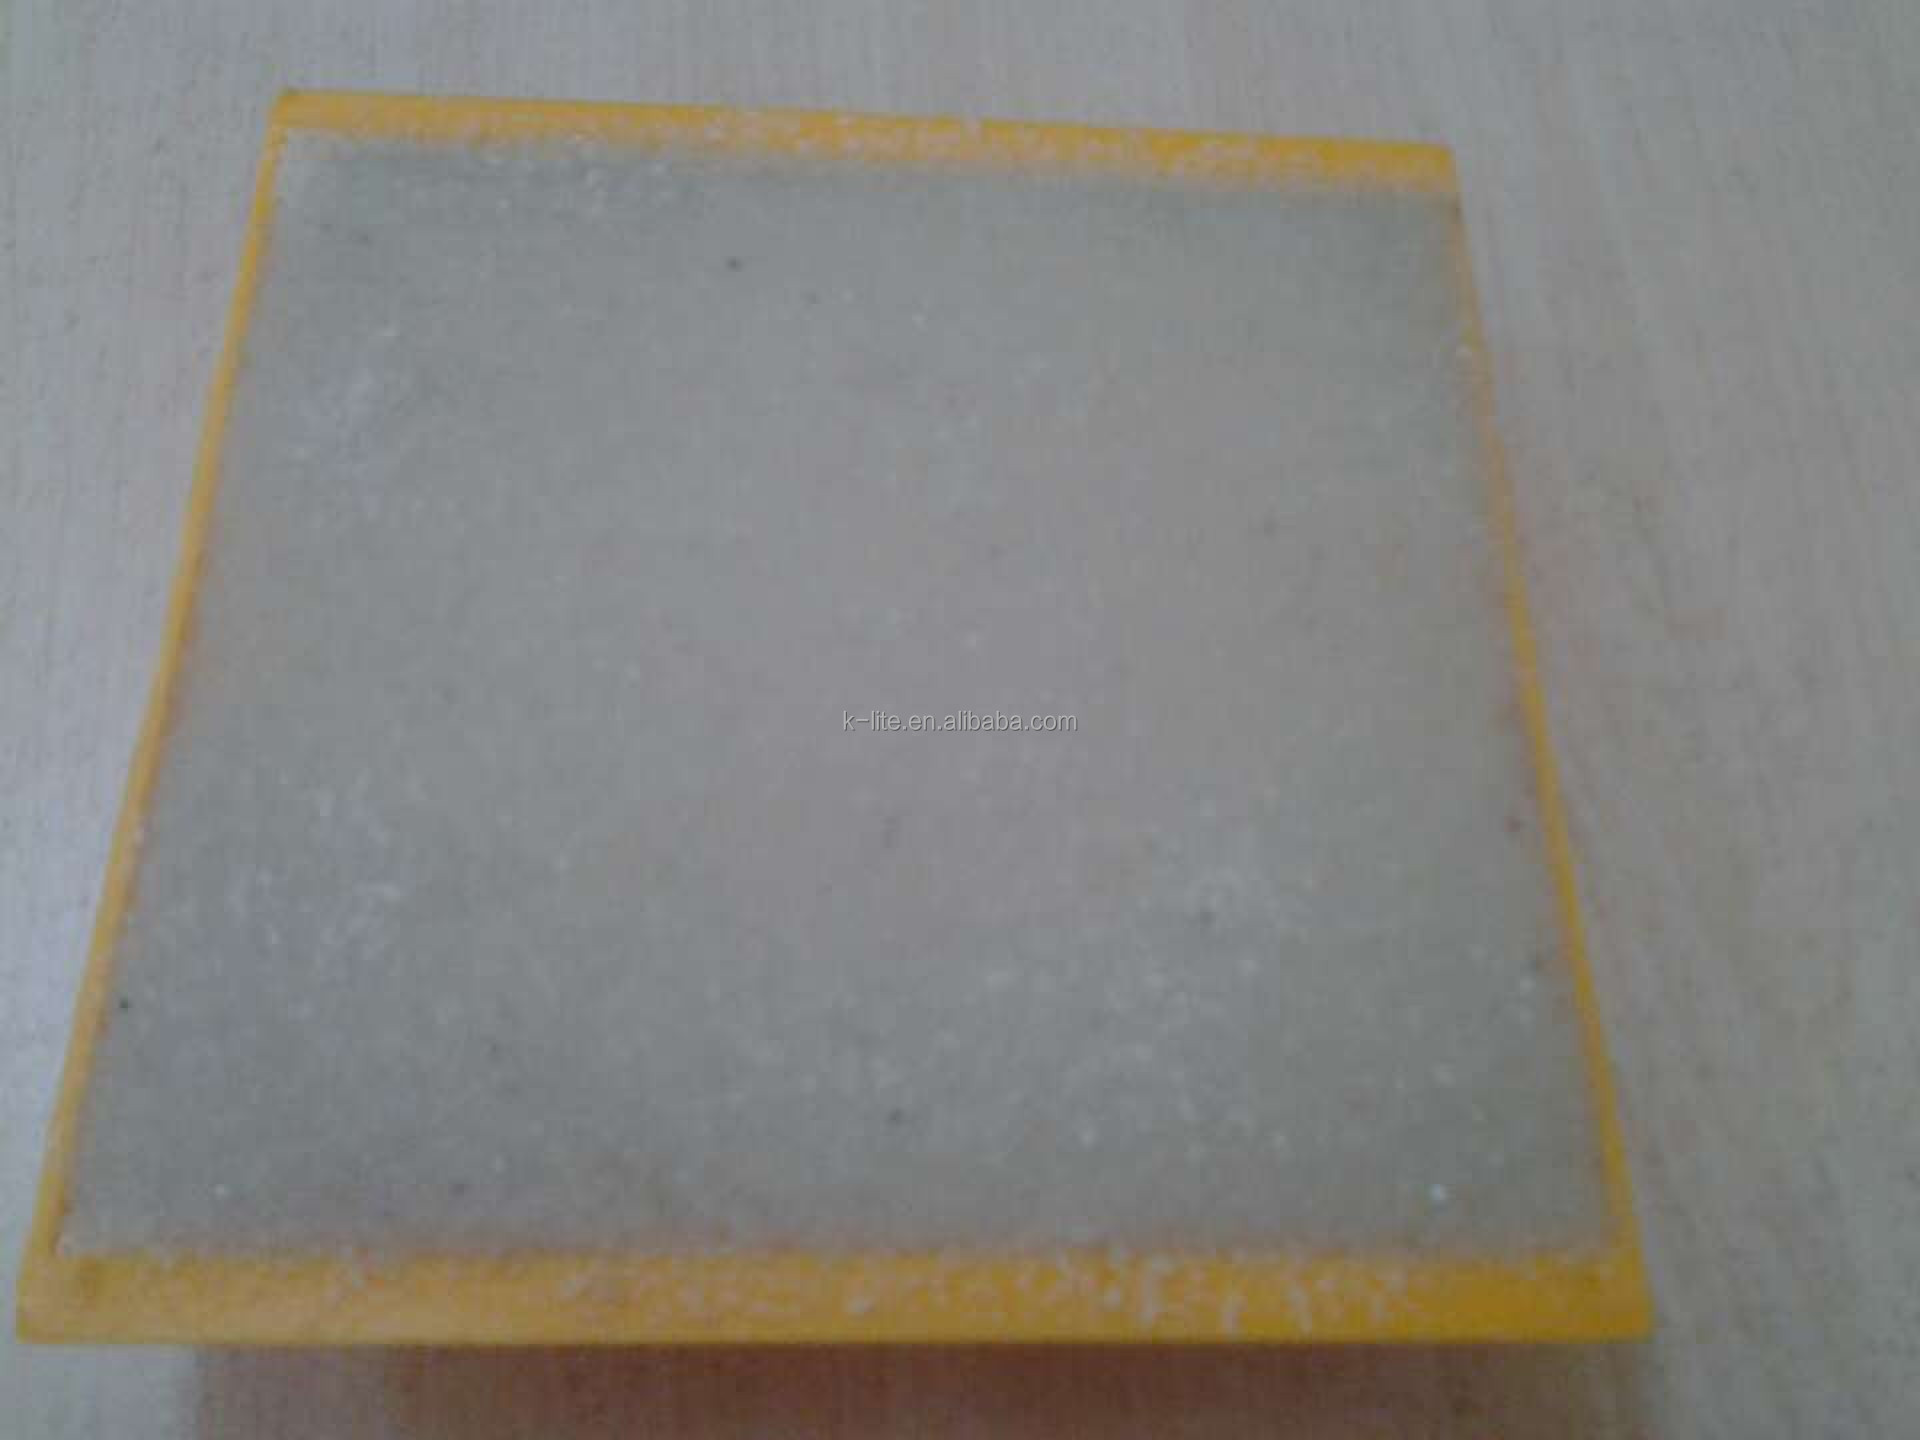 Plastic road safety reflector